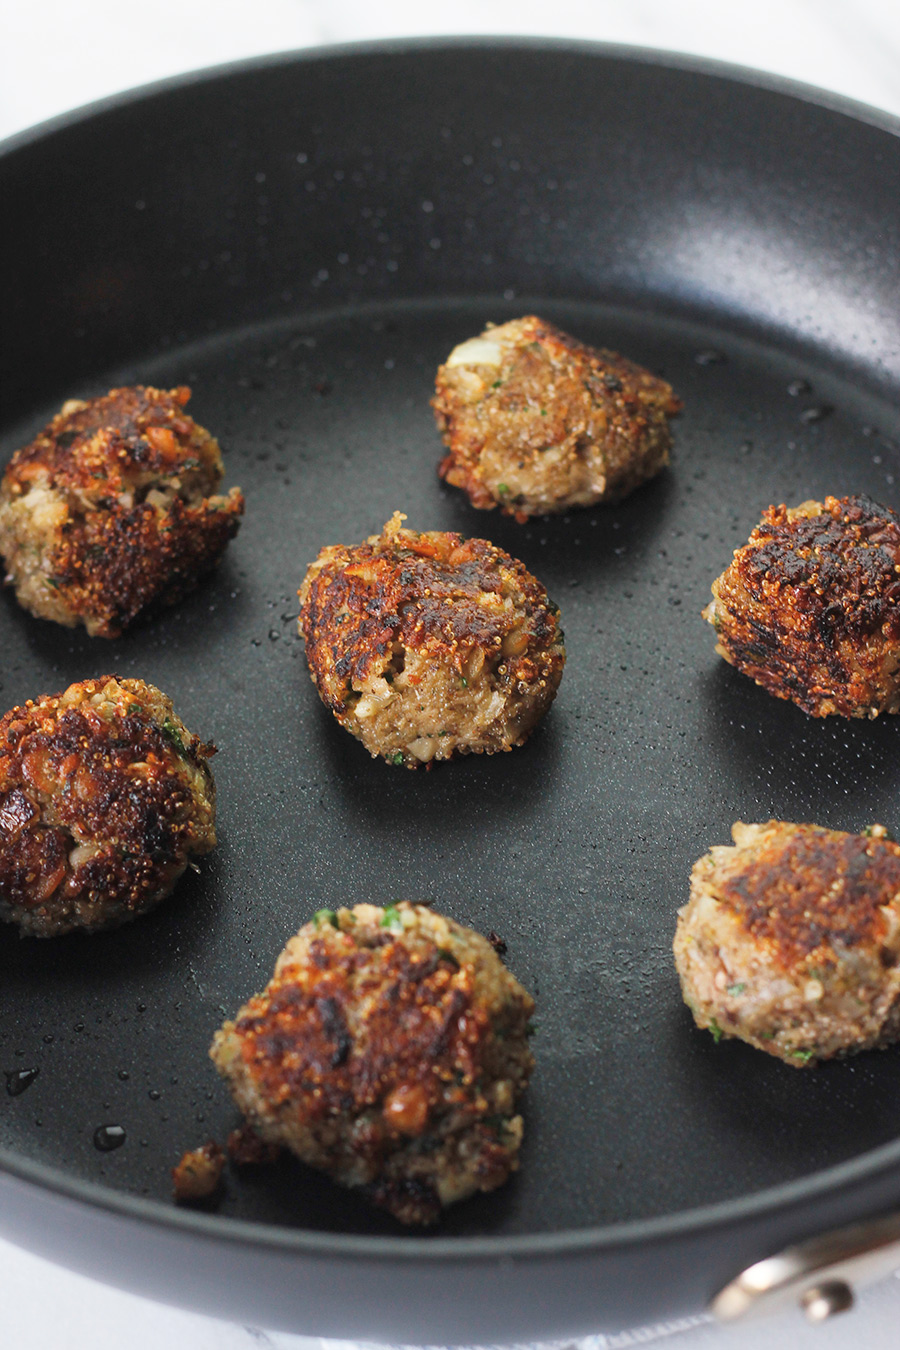 Easy meatless meatballs cooking in nonstick skillet.